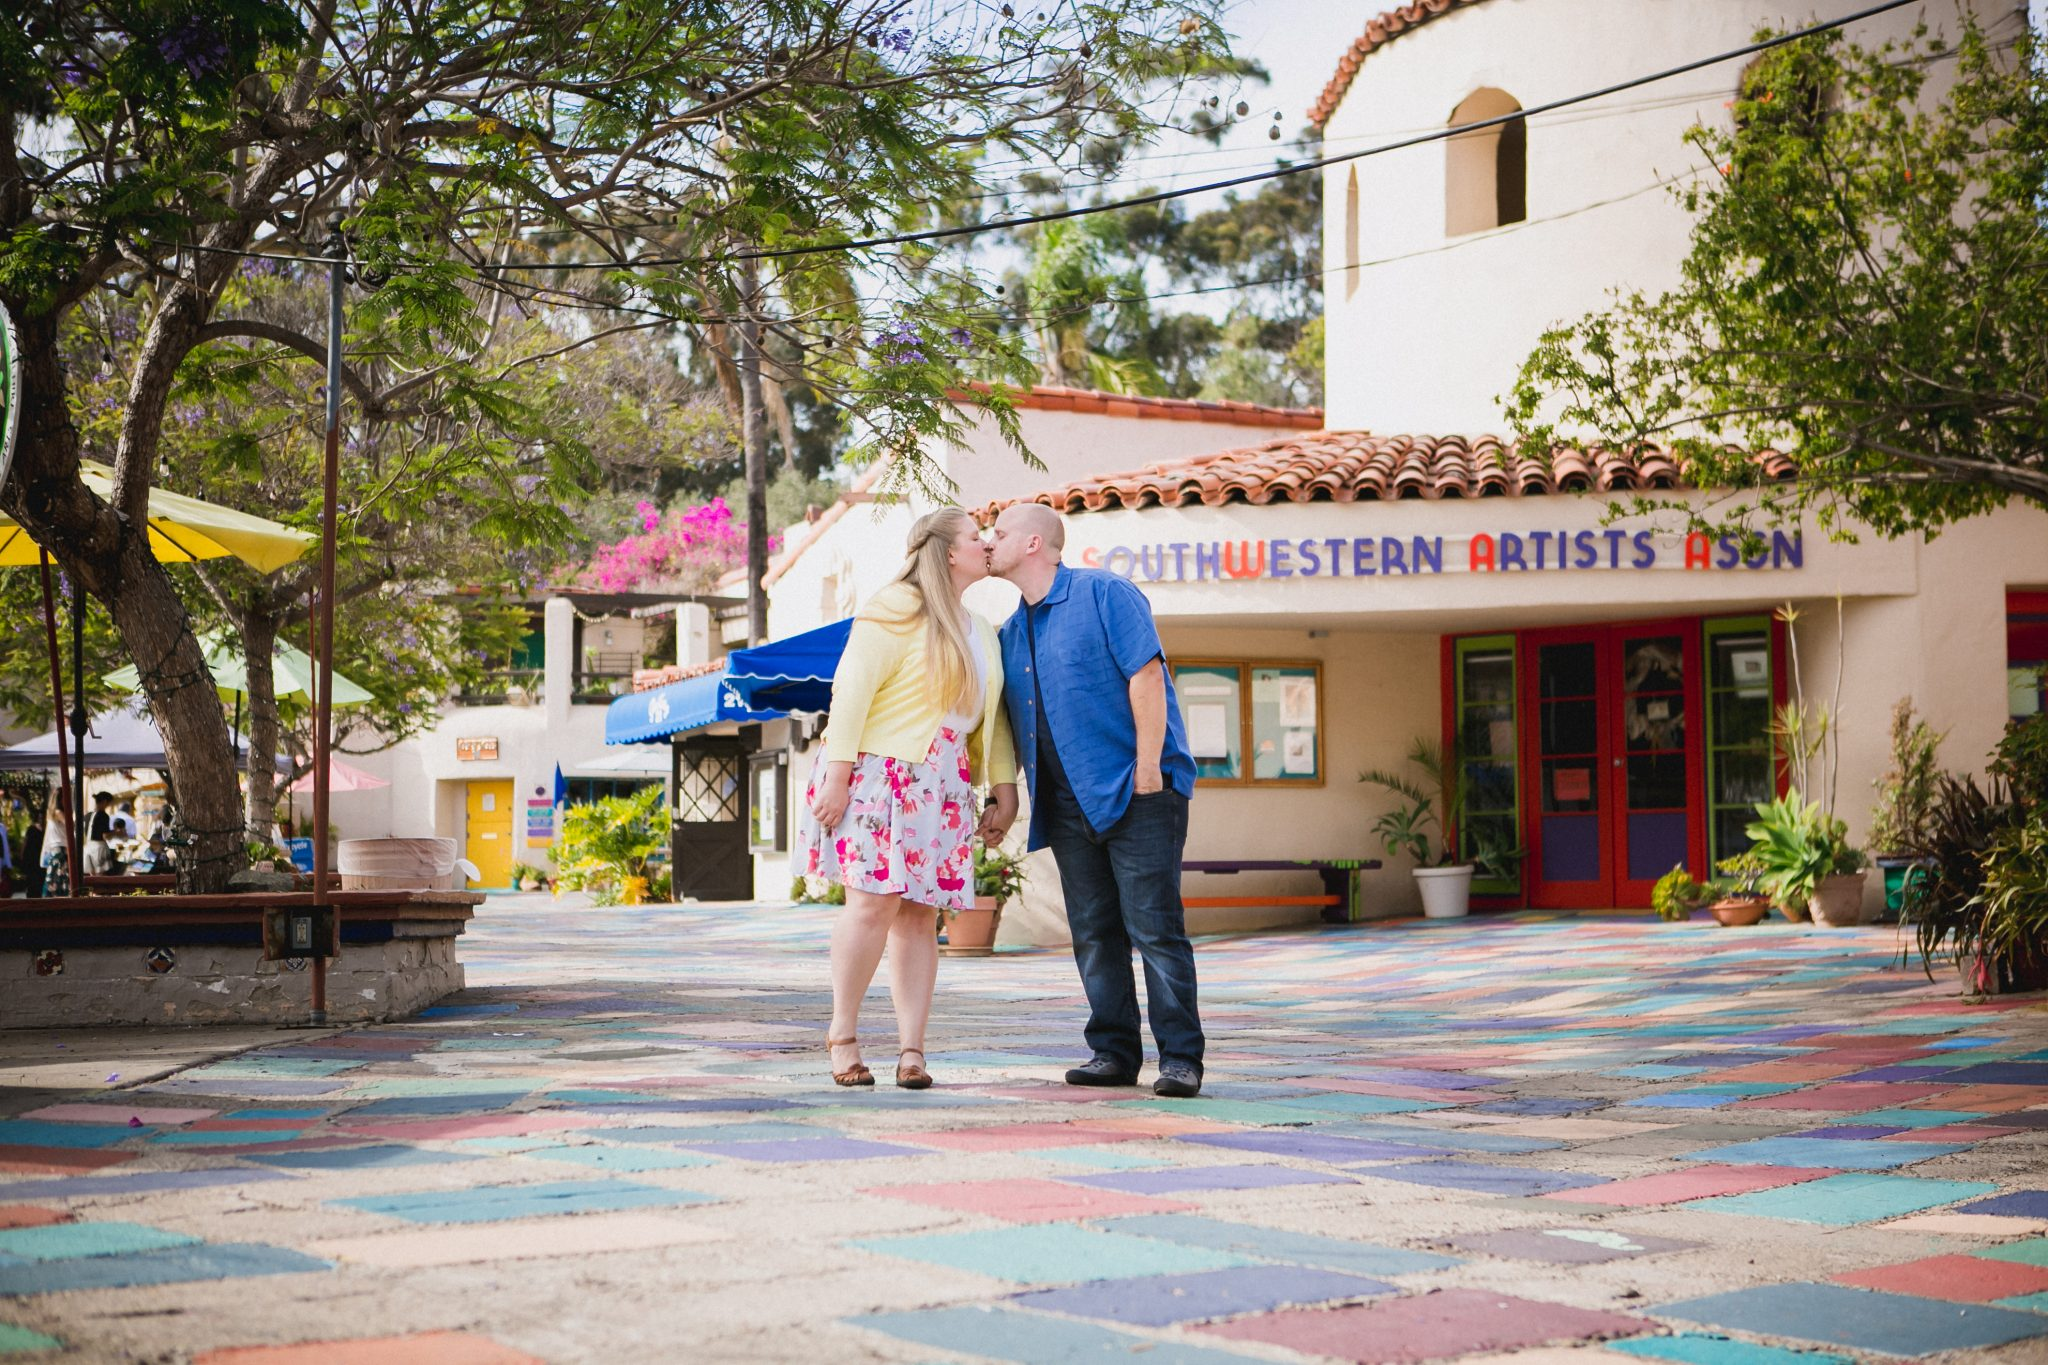 Kissing in a colorful location in San Diego, CA